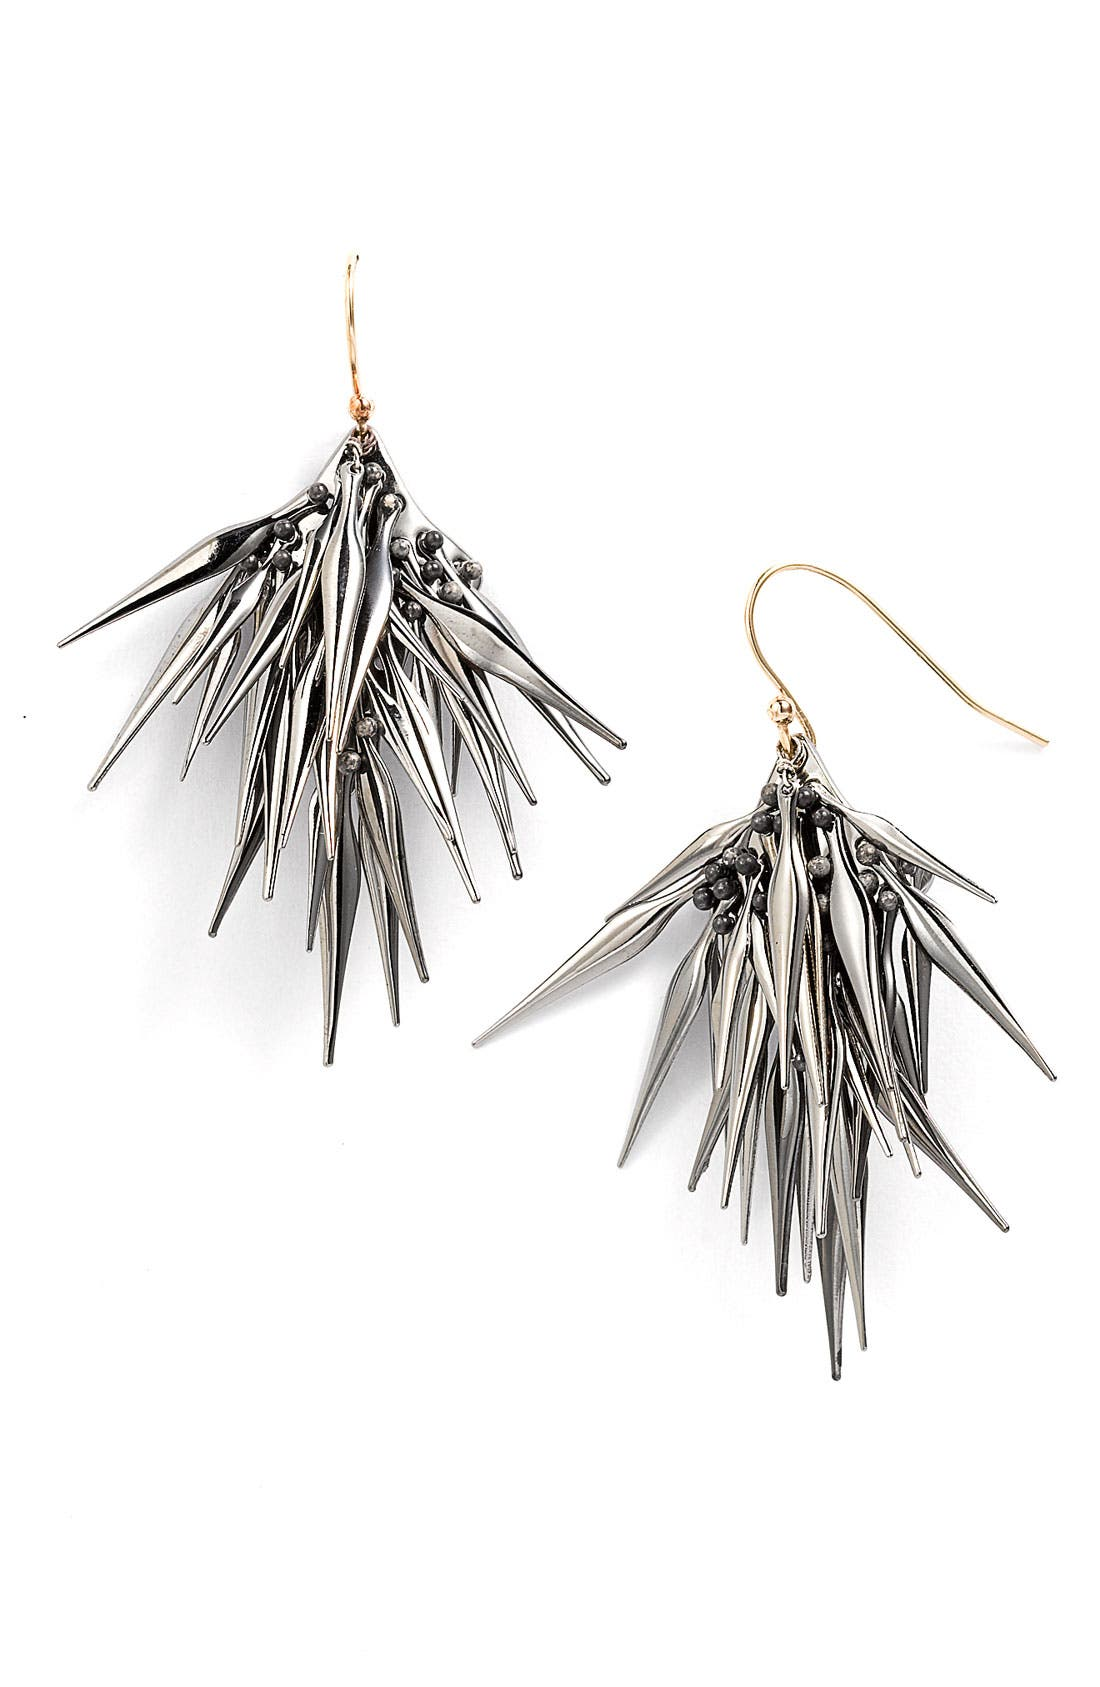 Alternate Image 1 Selected - Alexis Bittar 'Miss Havisham' Spike Earrings